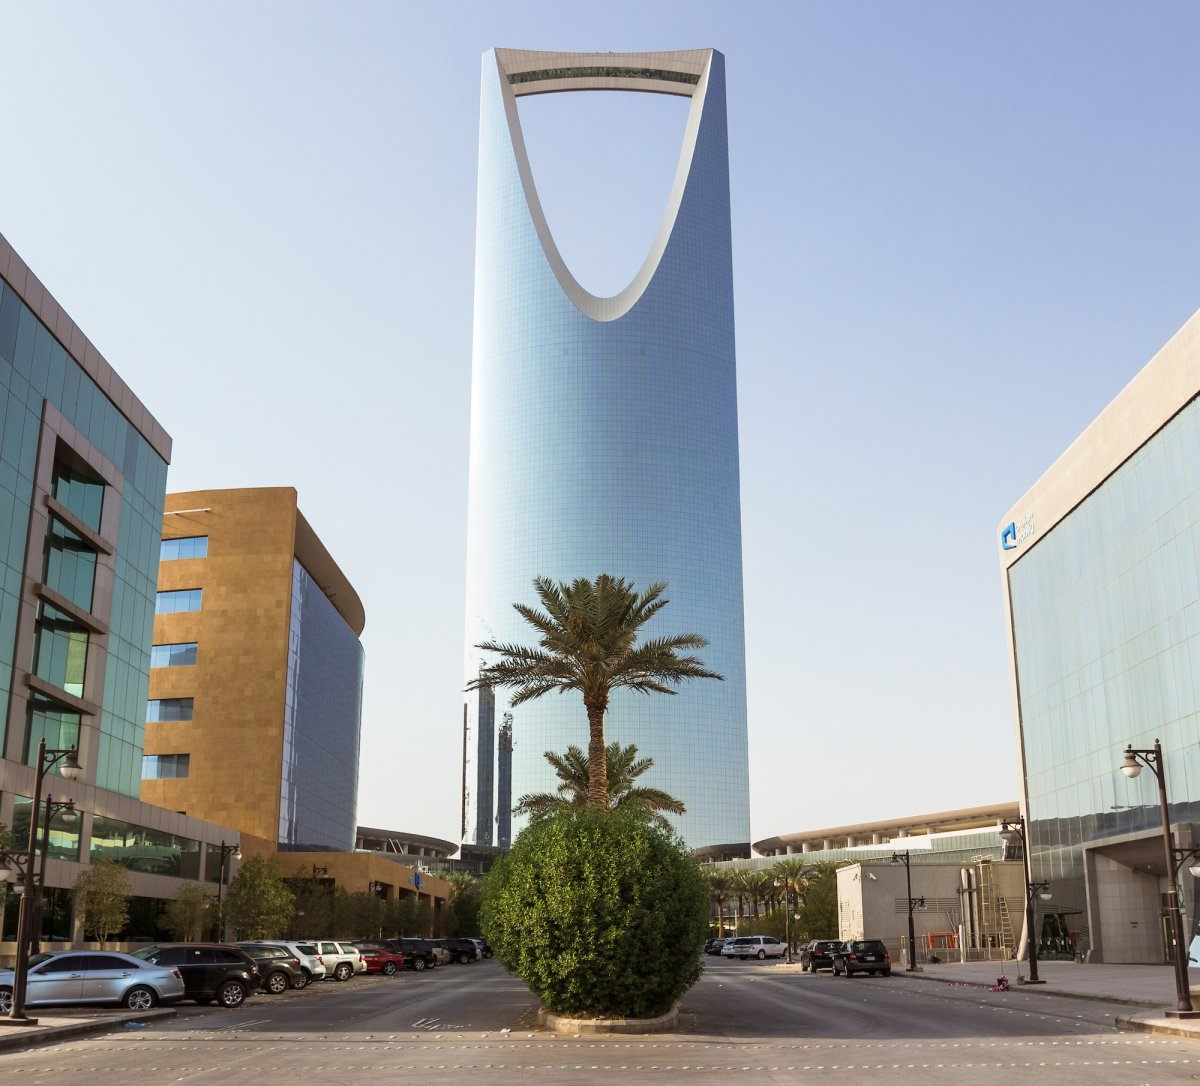 Skyscraper in Saudi Arabia